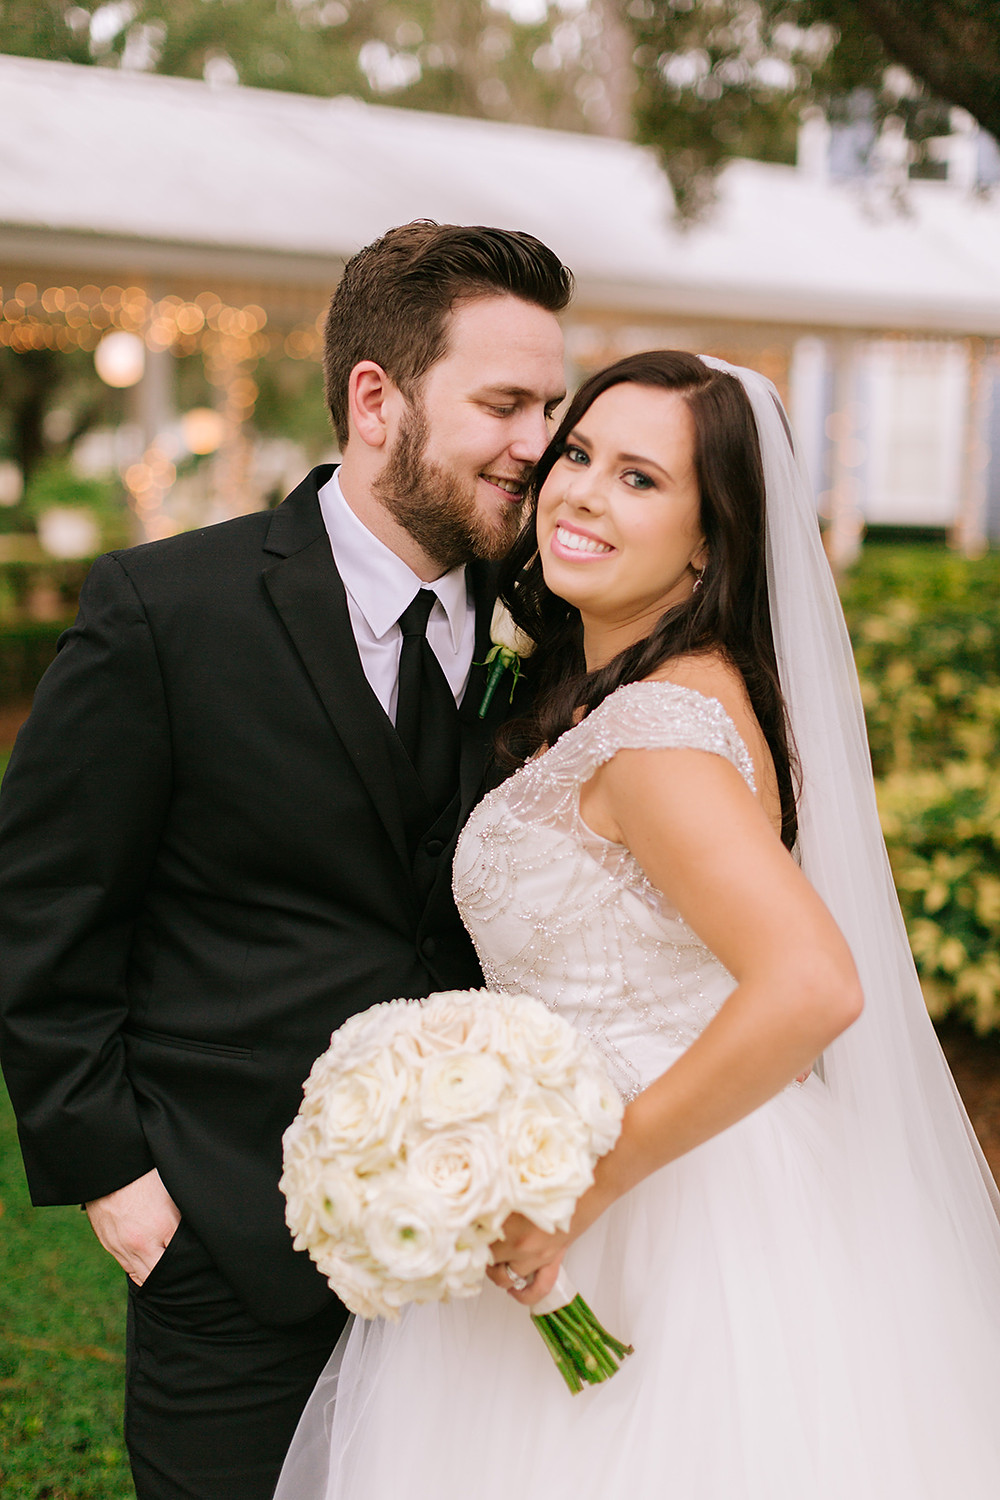 Bride and groom portrait after ceremony